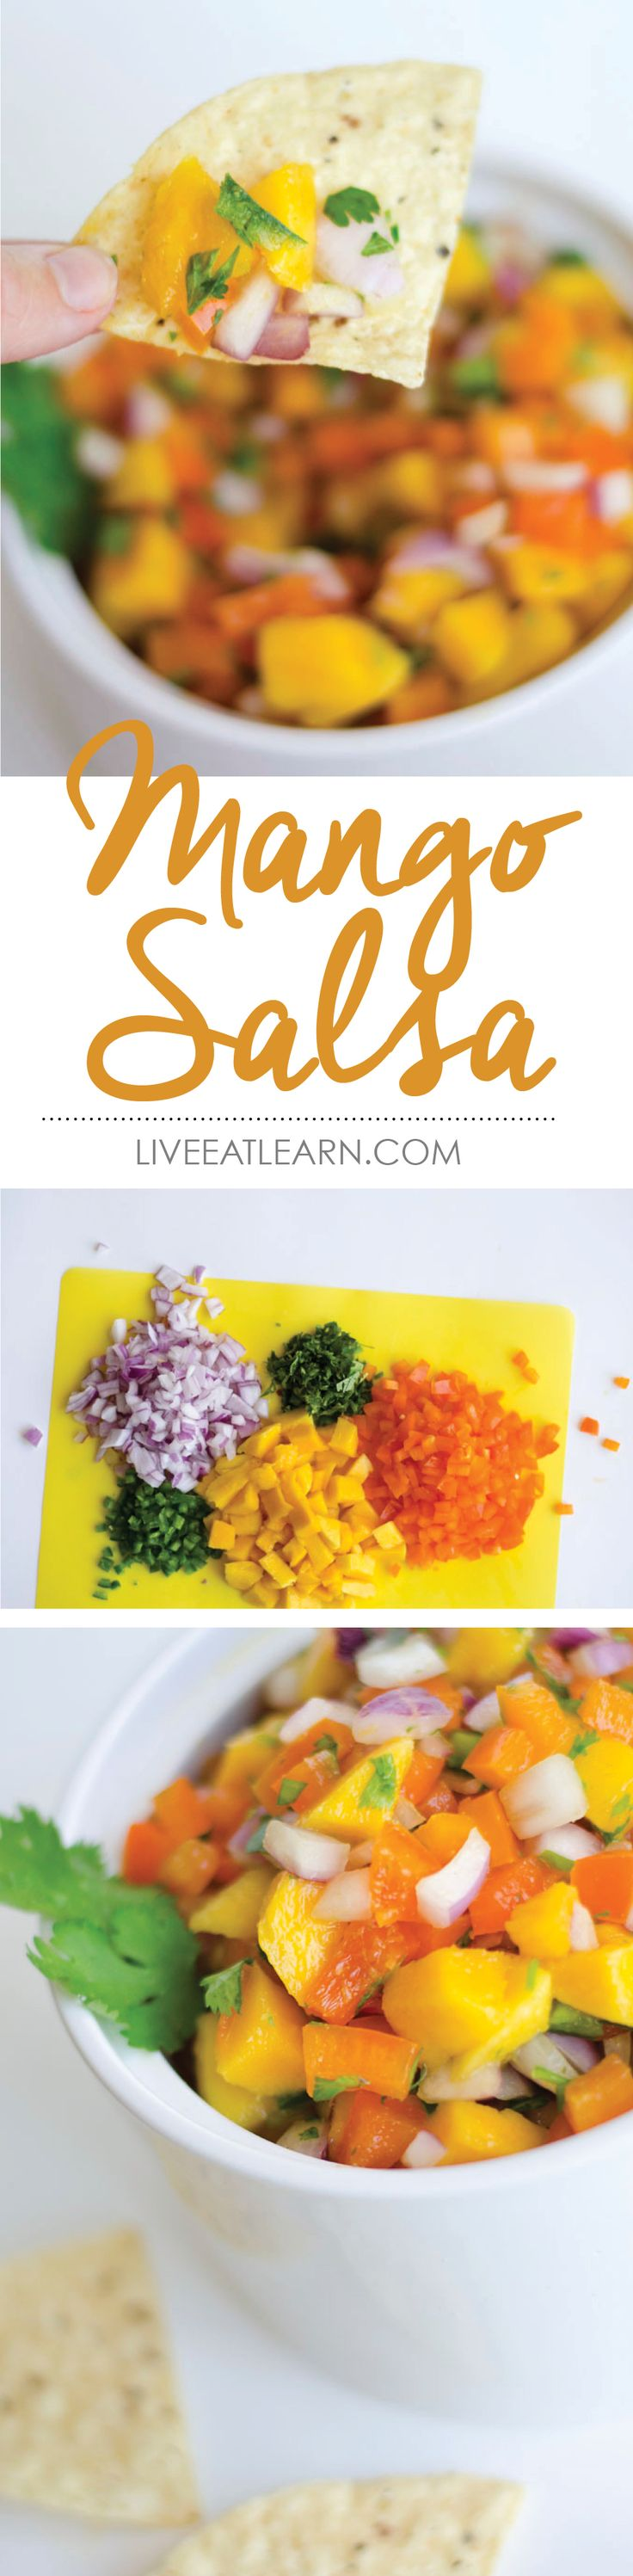 Mango salsa, so simple so summery // Live Eat Learn